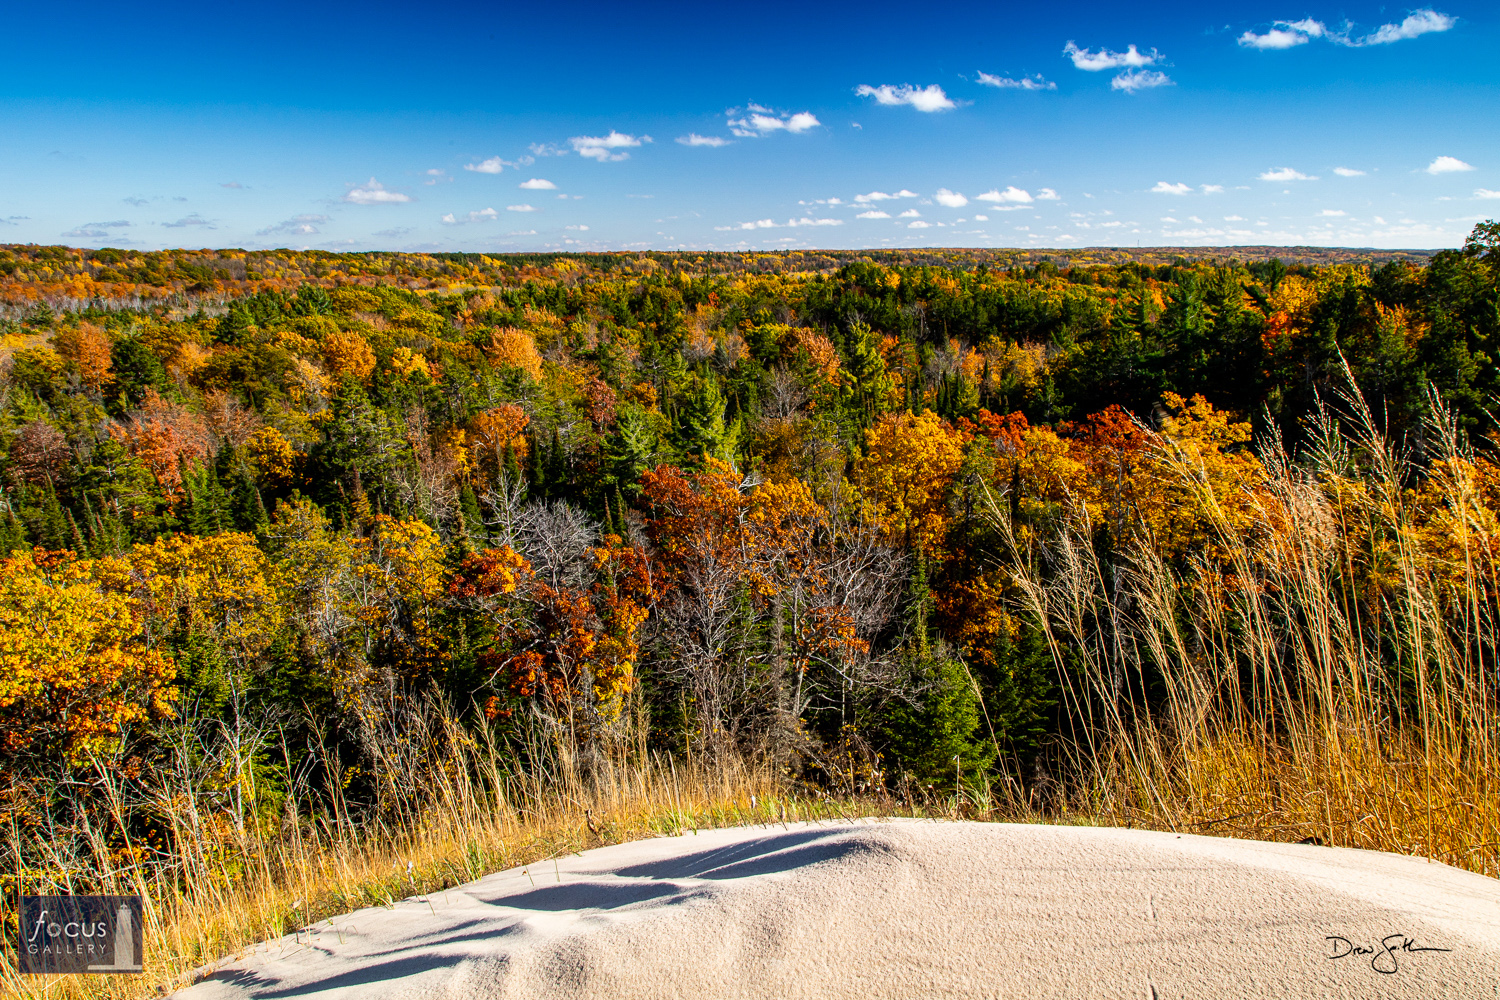 Photo © Drew Smith Autumn view from atop a high bluff near Otter Creek looking inland.